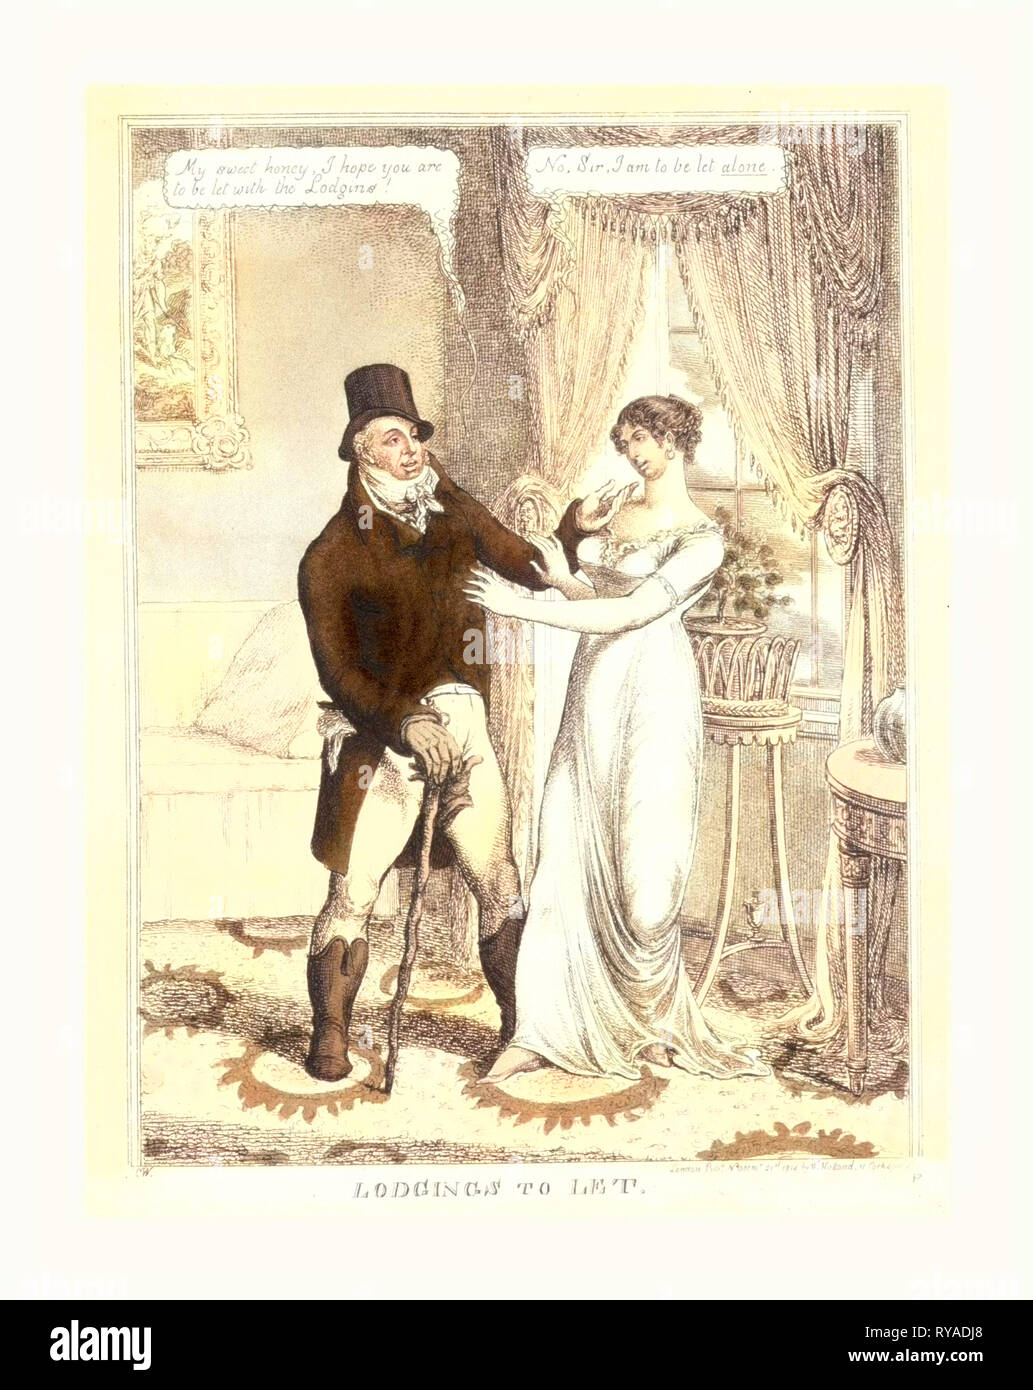 Lodgings to Let, C.W., London, 1814, a Fashionably Dressed Man Standing in a Well-Furnished Sitting-Room, Speaking to a Pretty and Elegant Young Woman.  He Wears a Tophat, Hessian Boots, and Carries a Large Rough Walking-Stick.  He Says: My Sweet Honey, I Hope You Are to Be Let with the Lodgins! She Answers: No, Sir, I Am to Be Let Alone - Stock Image